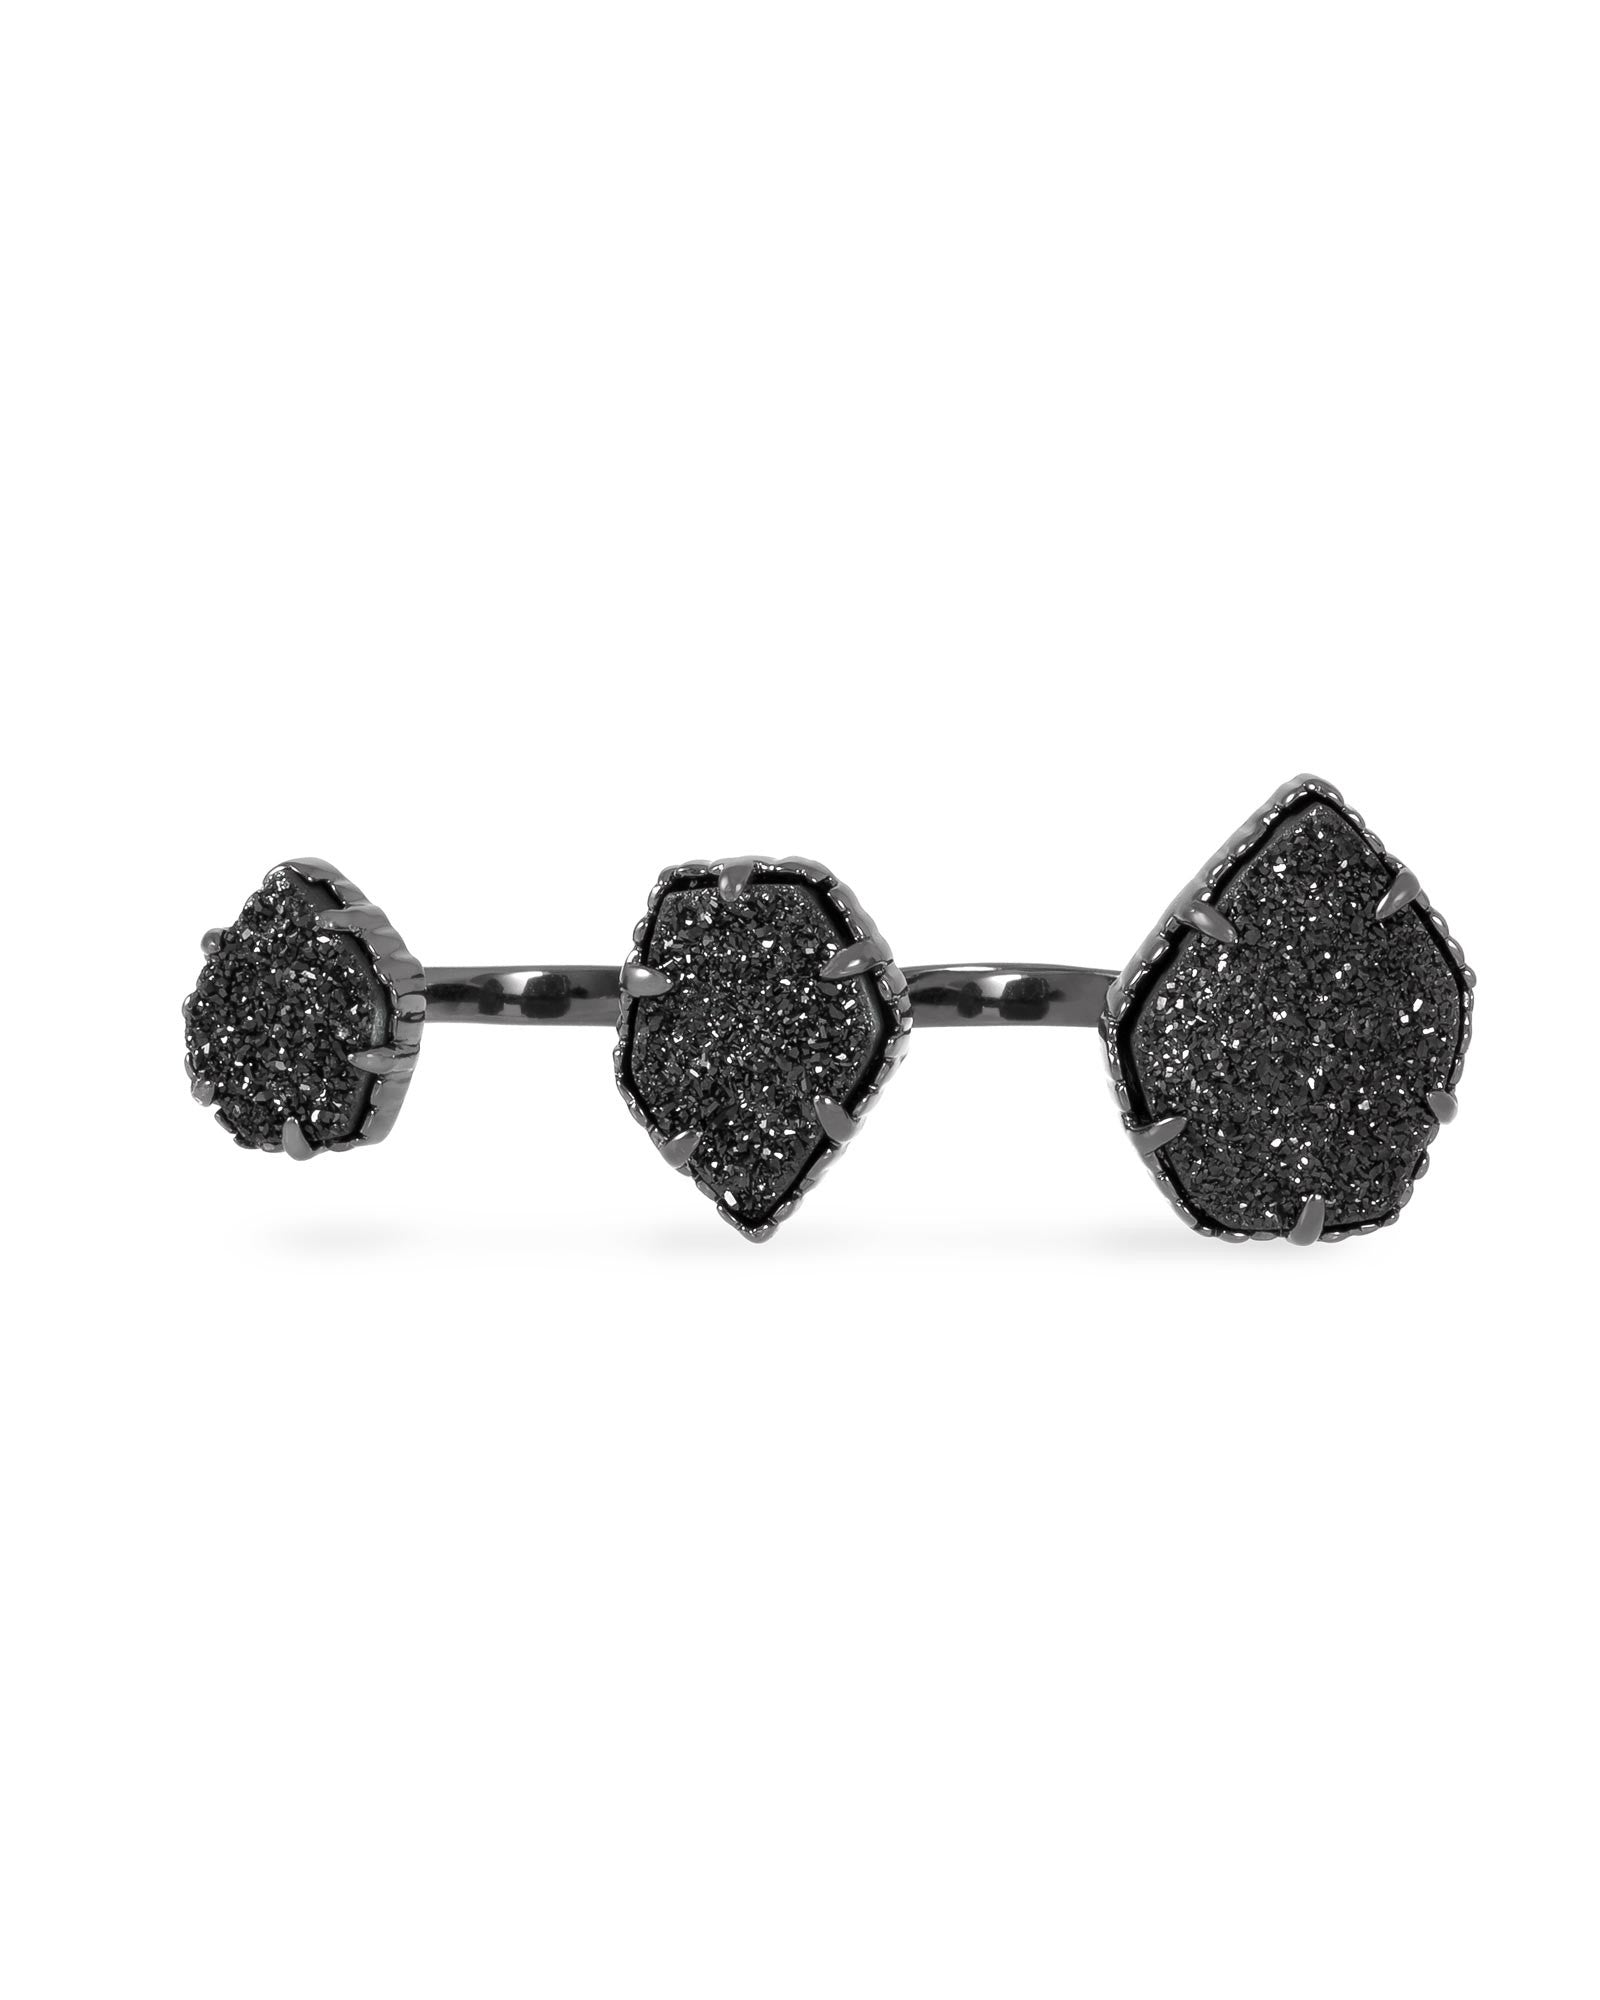 Black Gun Plated with Black Druzy Stone Knuckle Ring - CharmToSpare